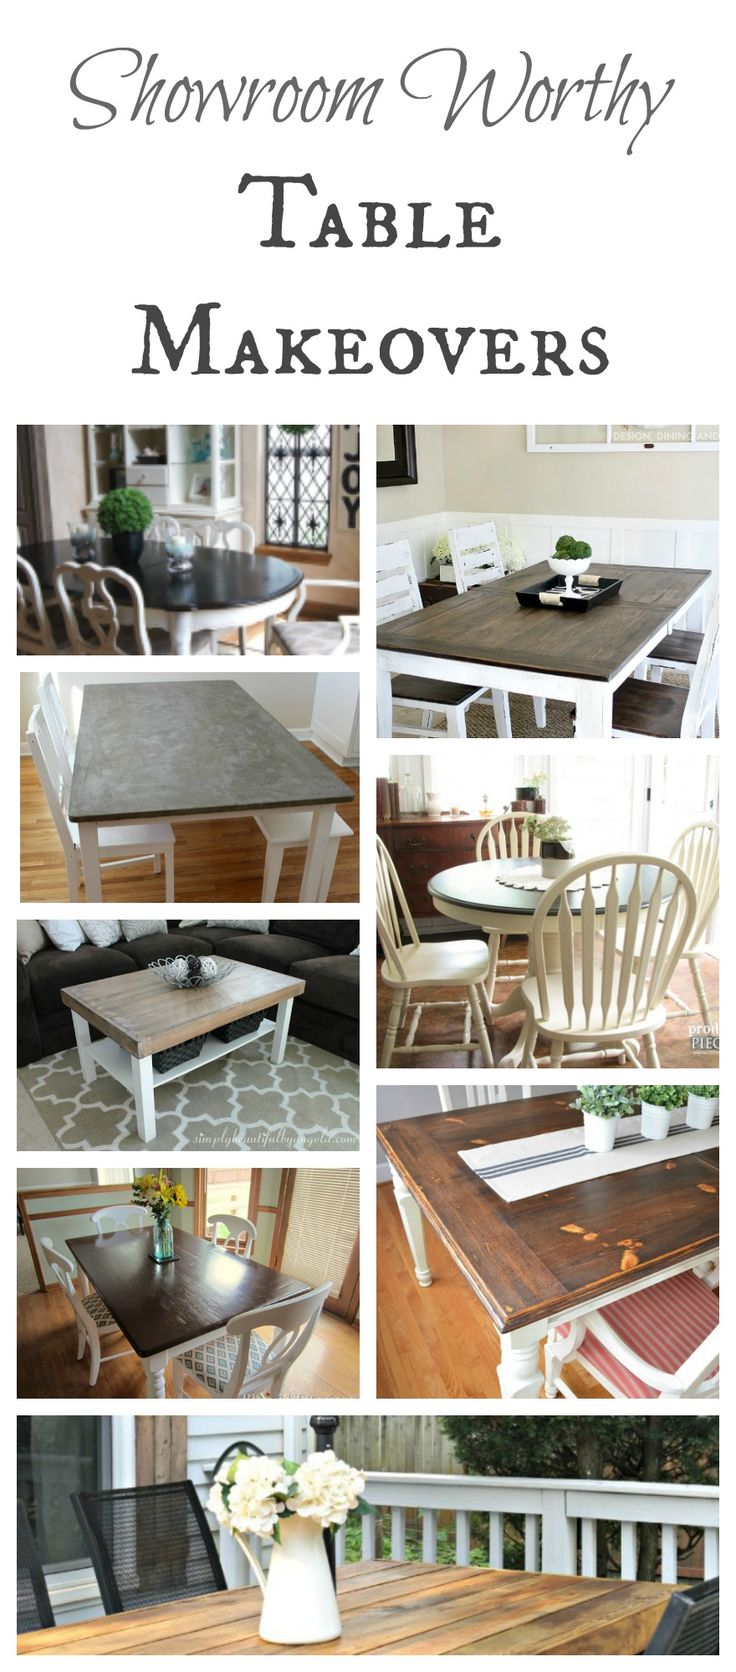 Showroom Worthy Table Makeovers